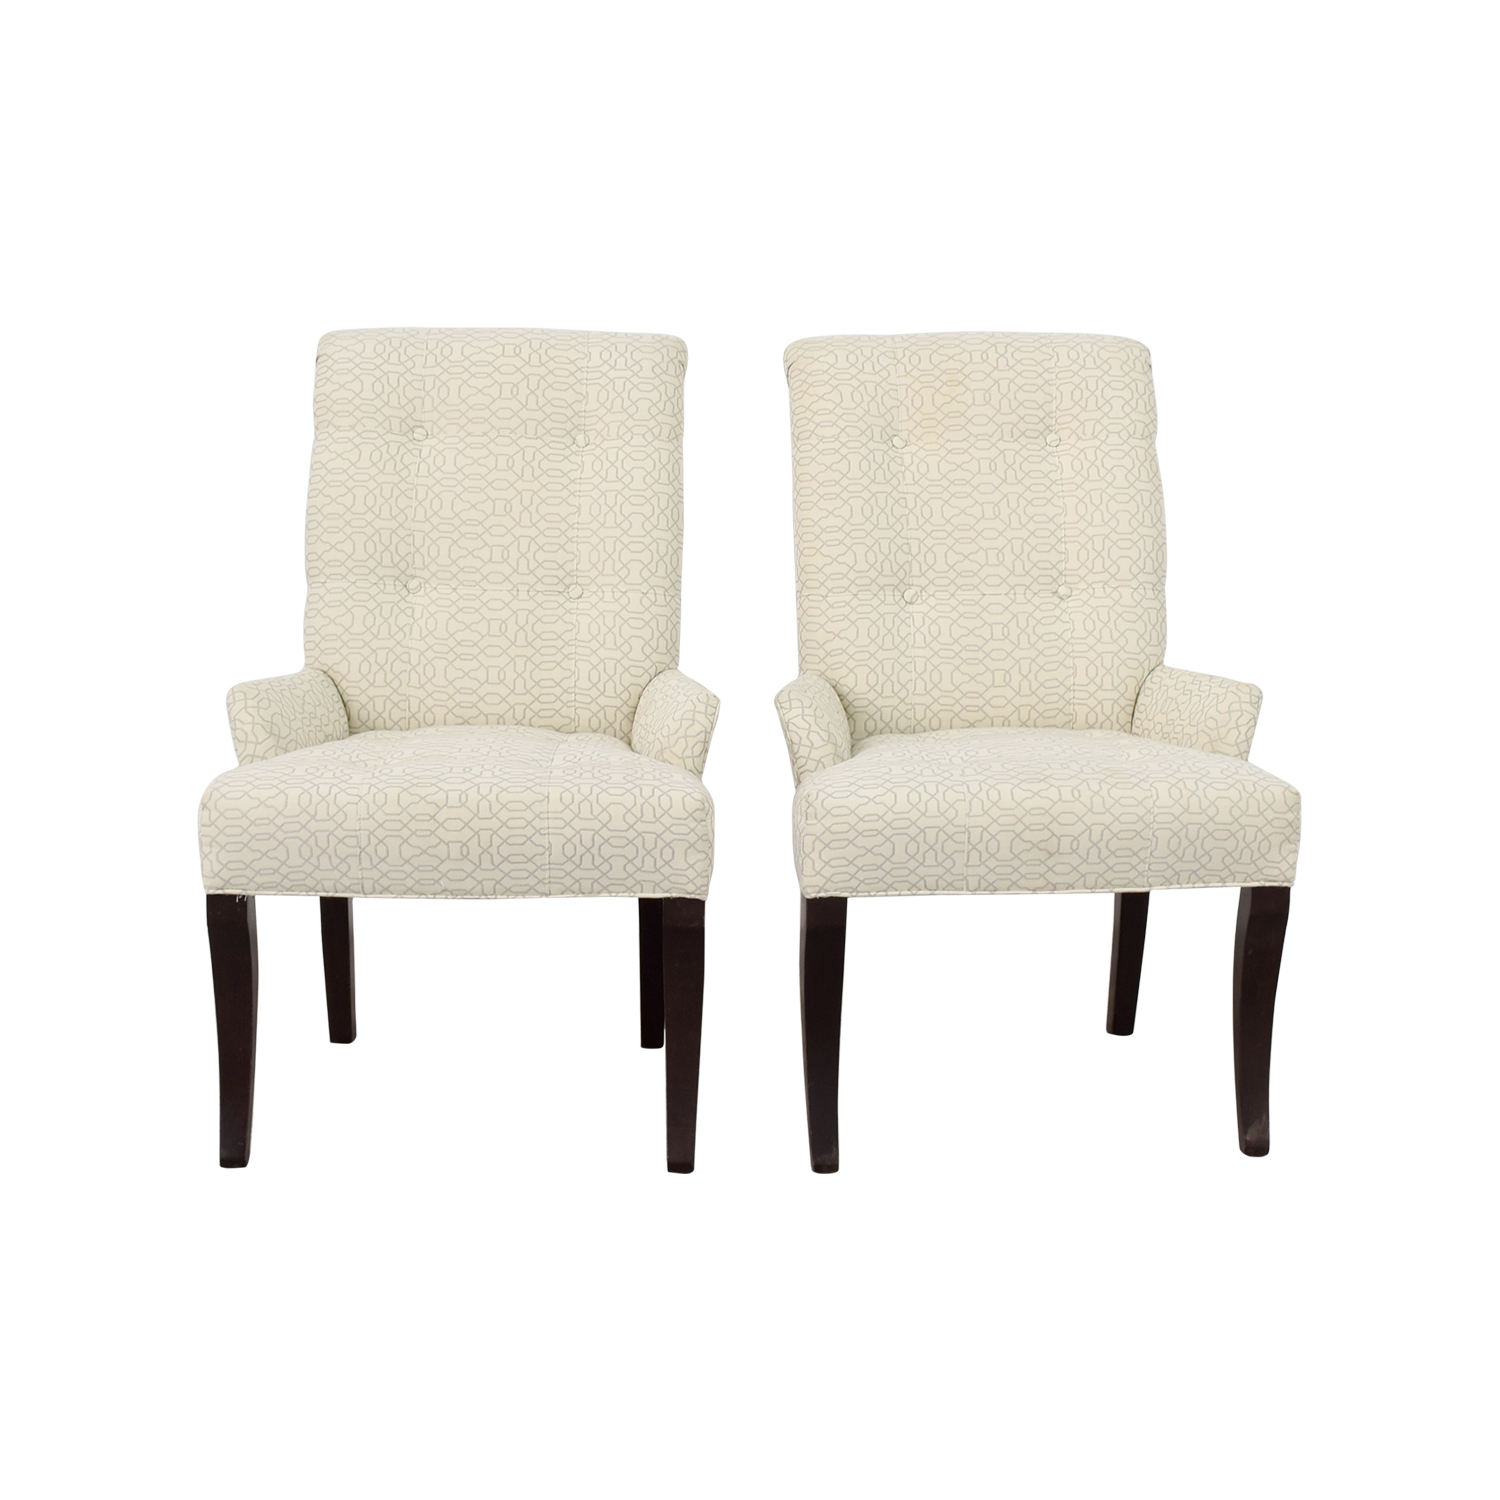 buy Ethan Allen Ethan Allen Jaqueline White Accent Chair online